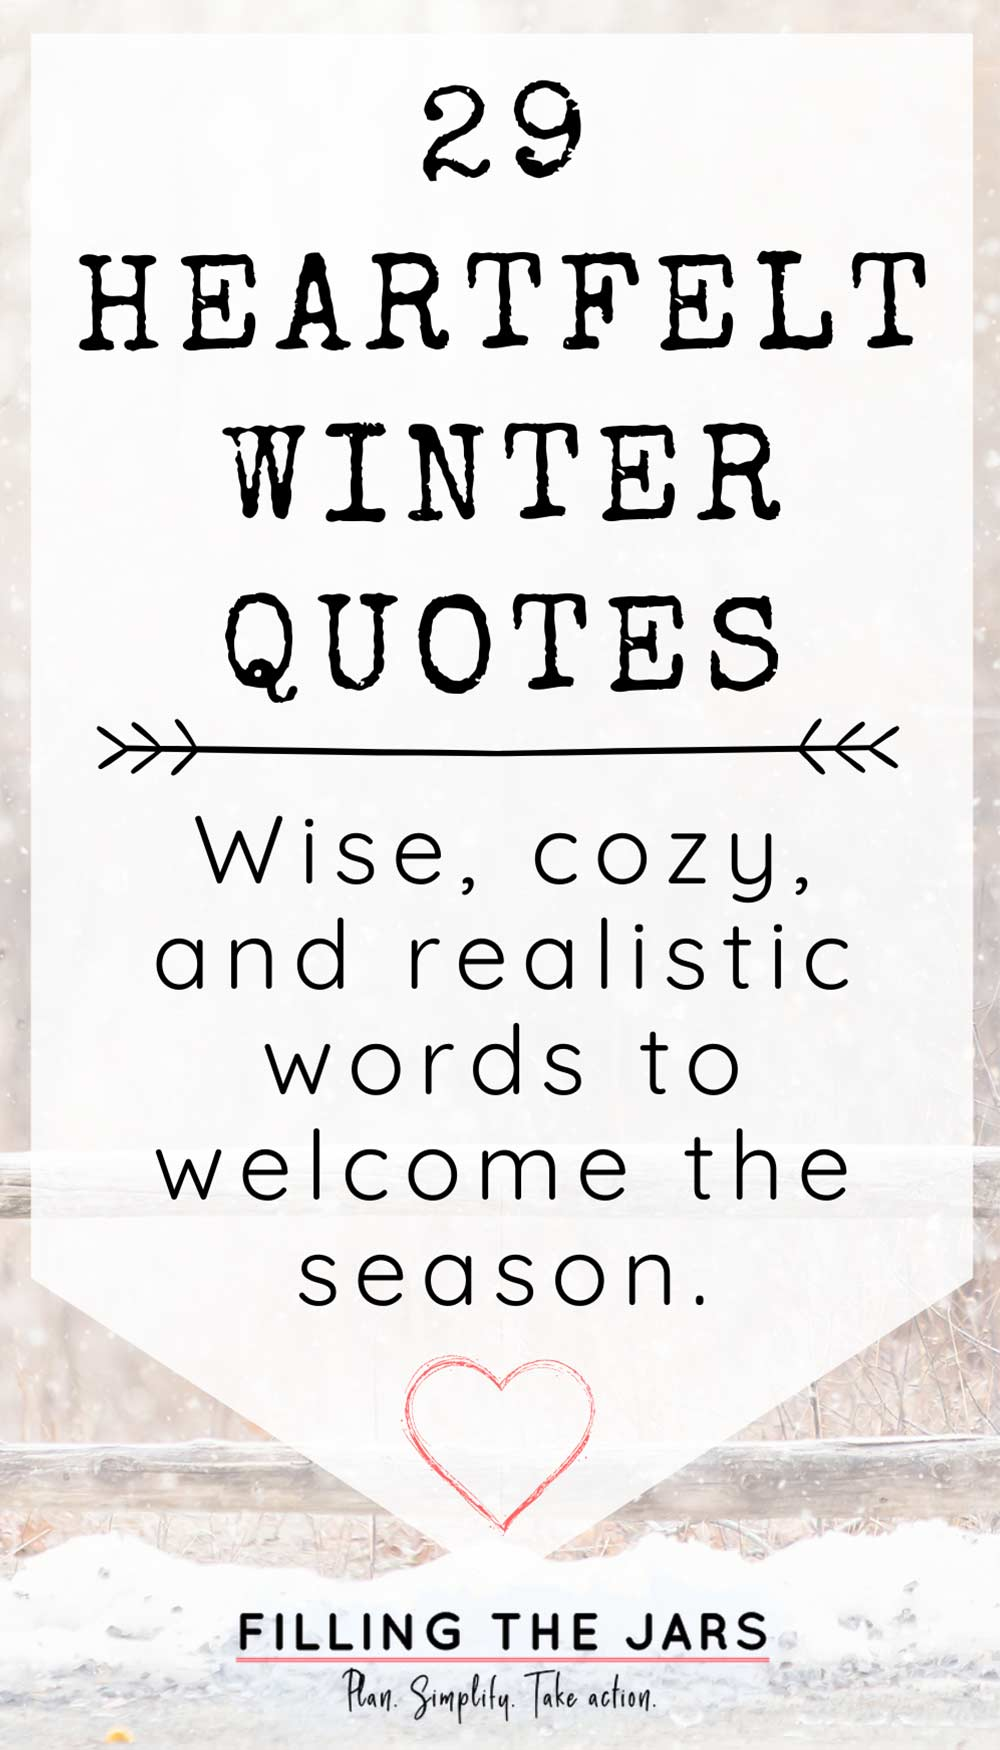 winter quotes text on white background over outdoor winter scene image